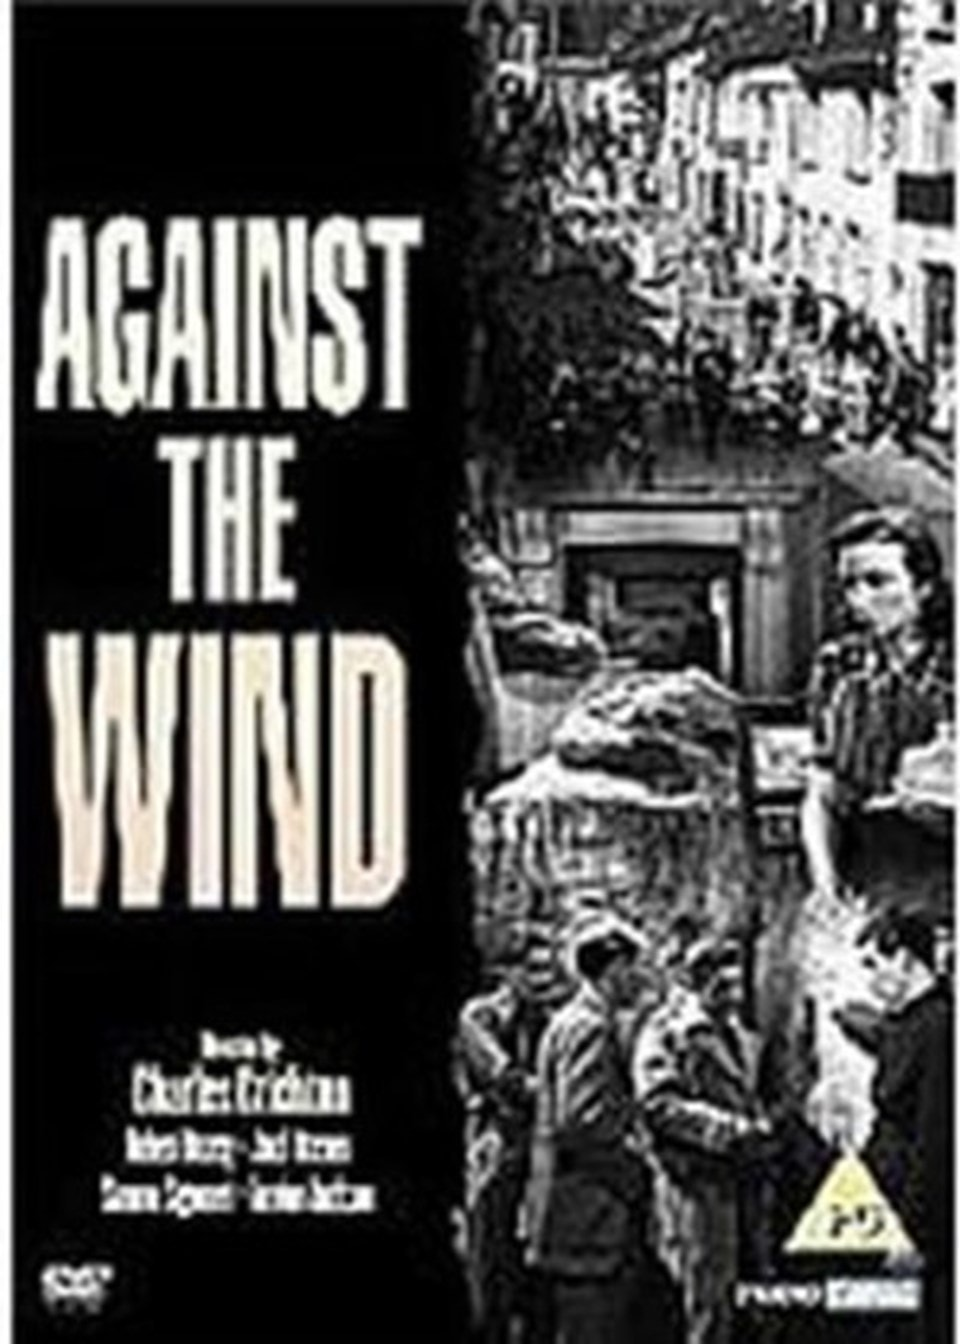 Against the Wind - 1